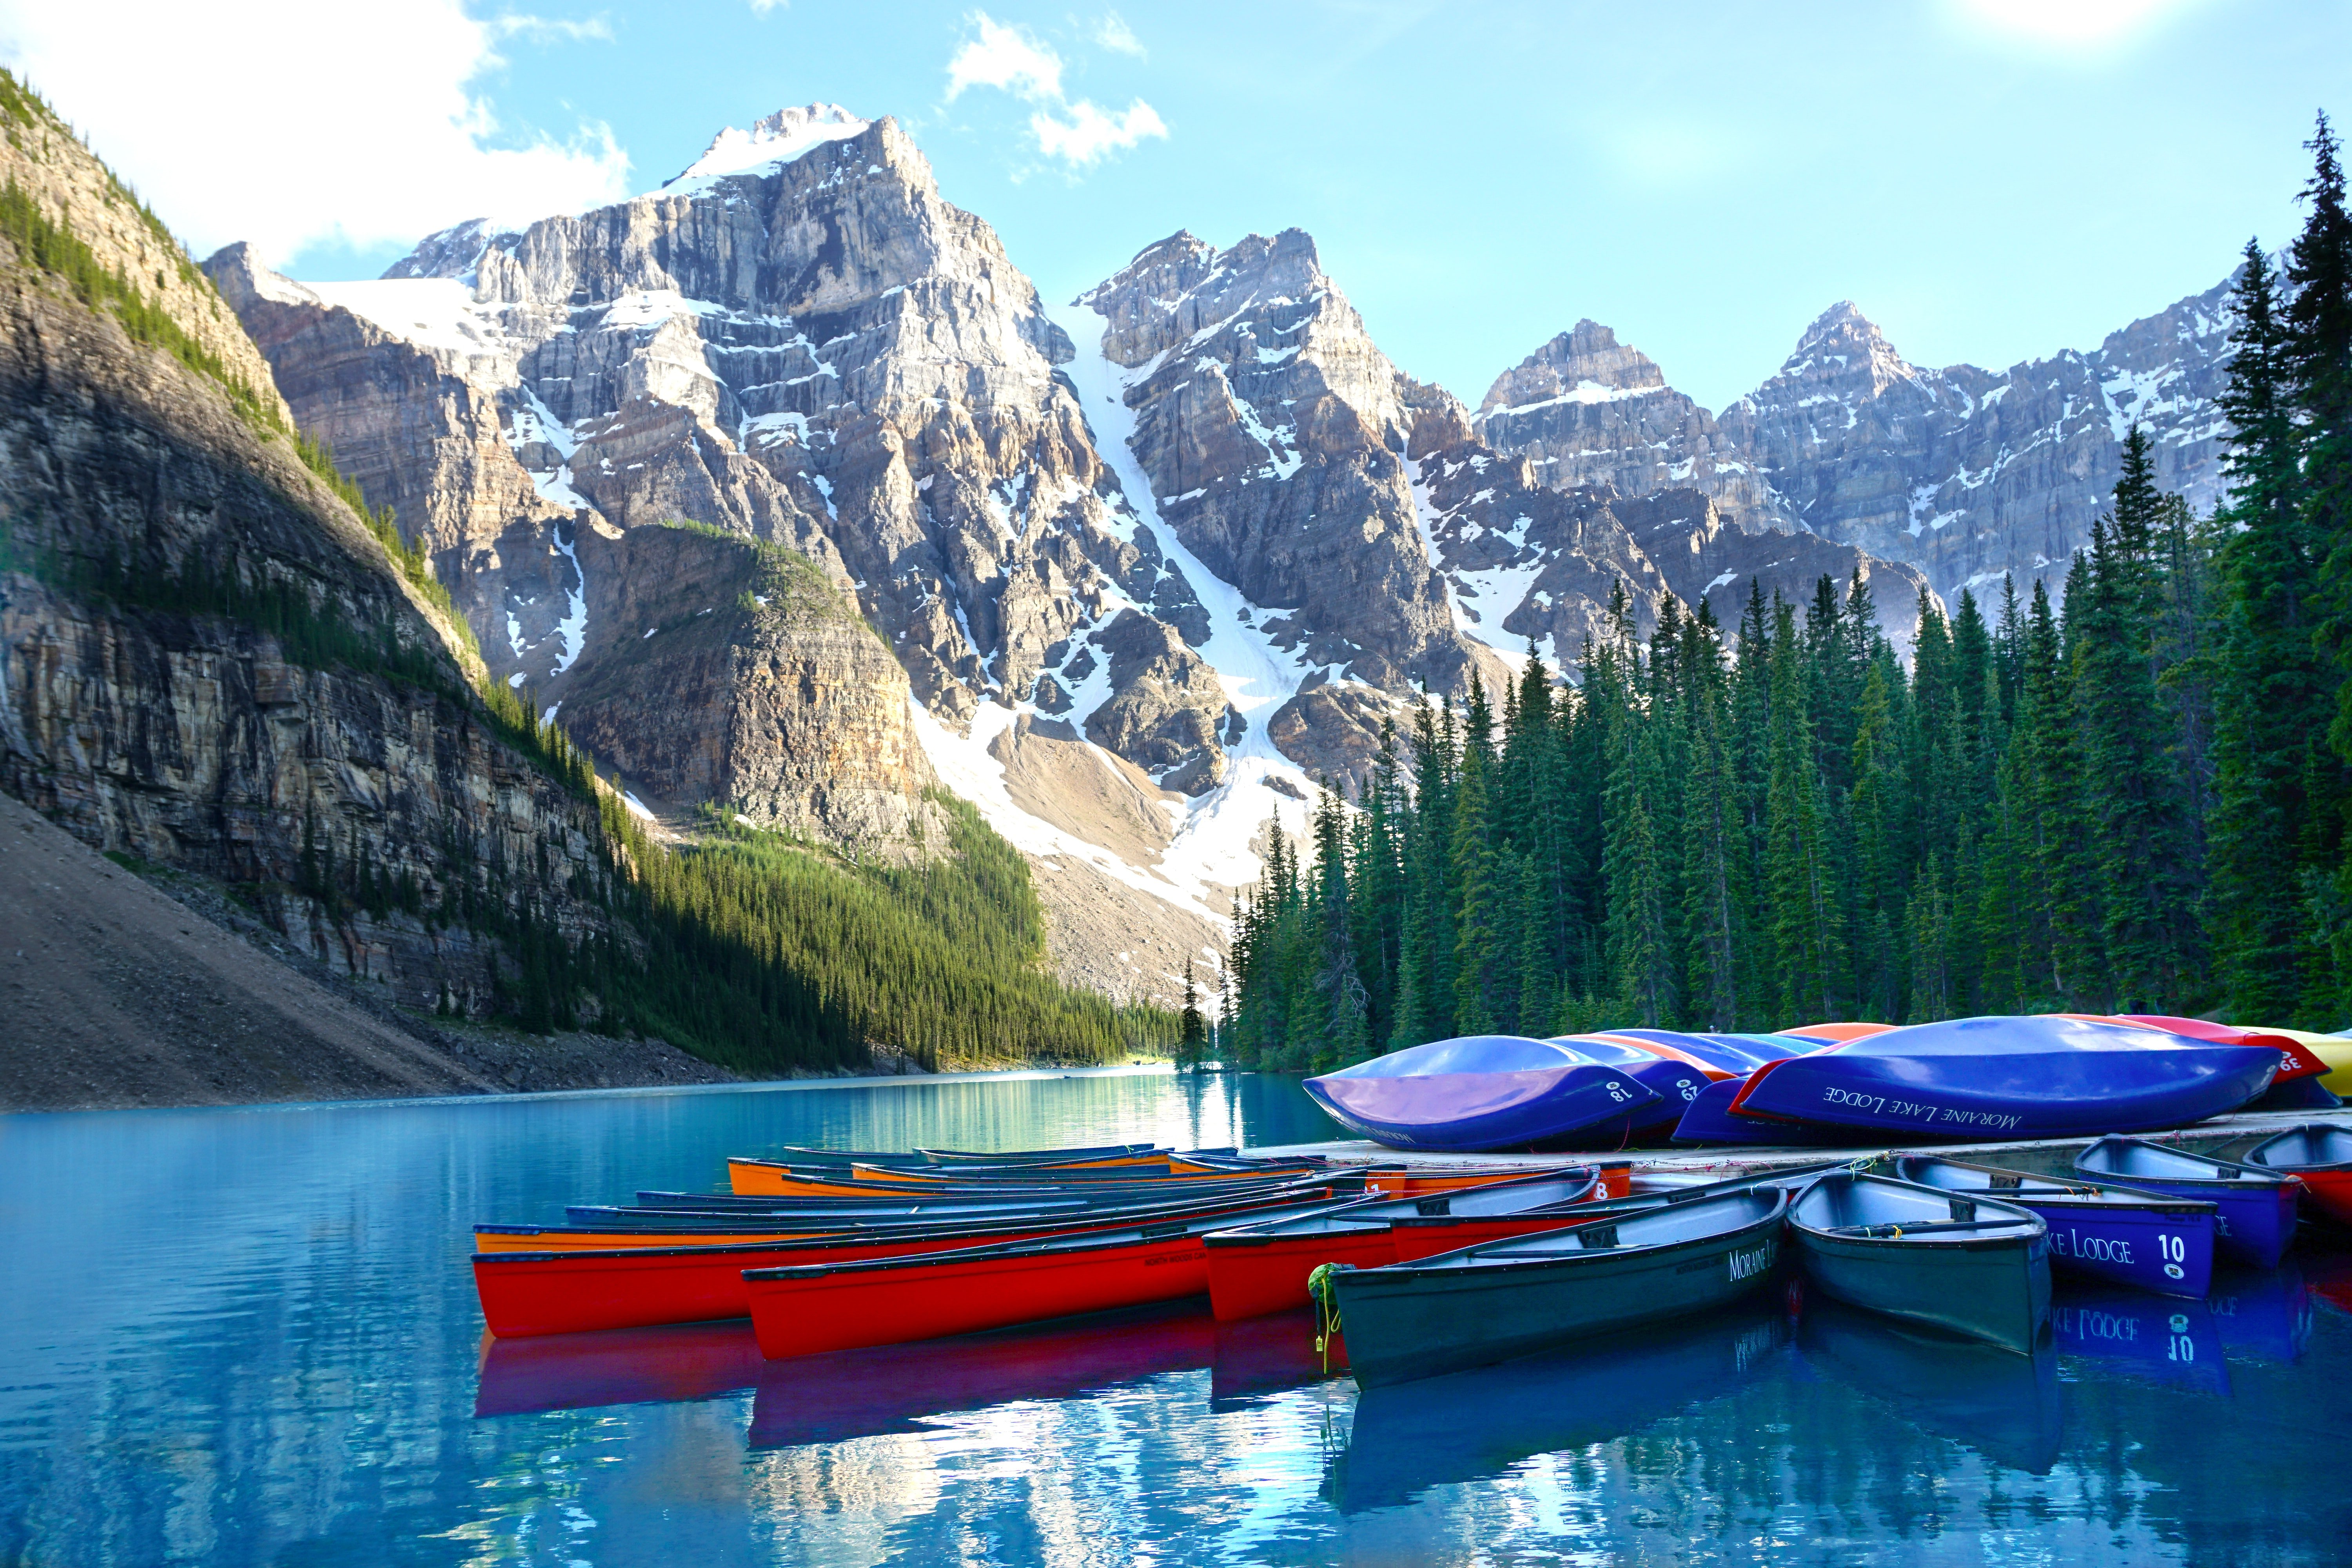 Canoes on blue waters with mountains and trees in the background